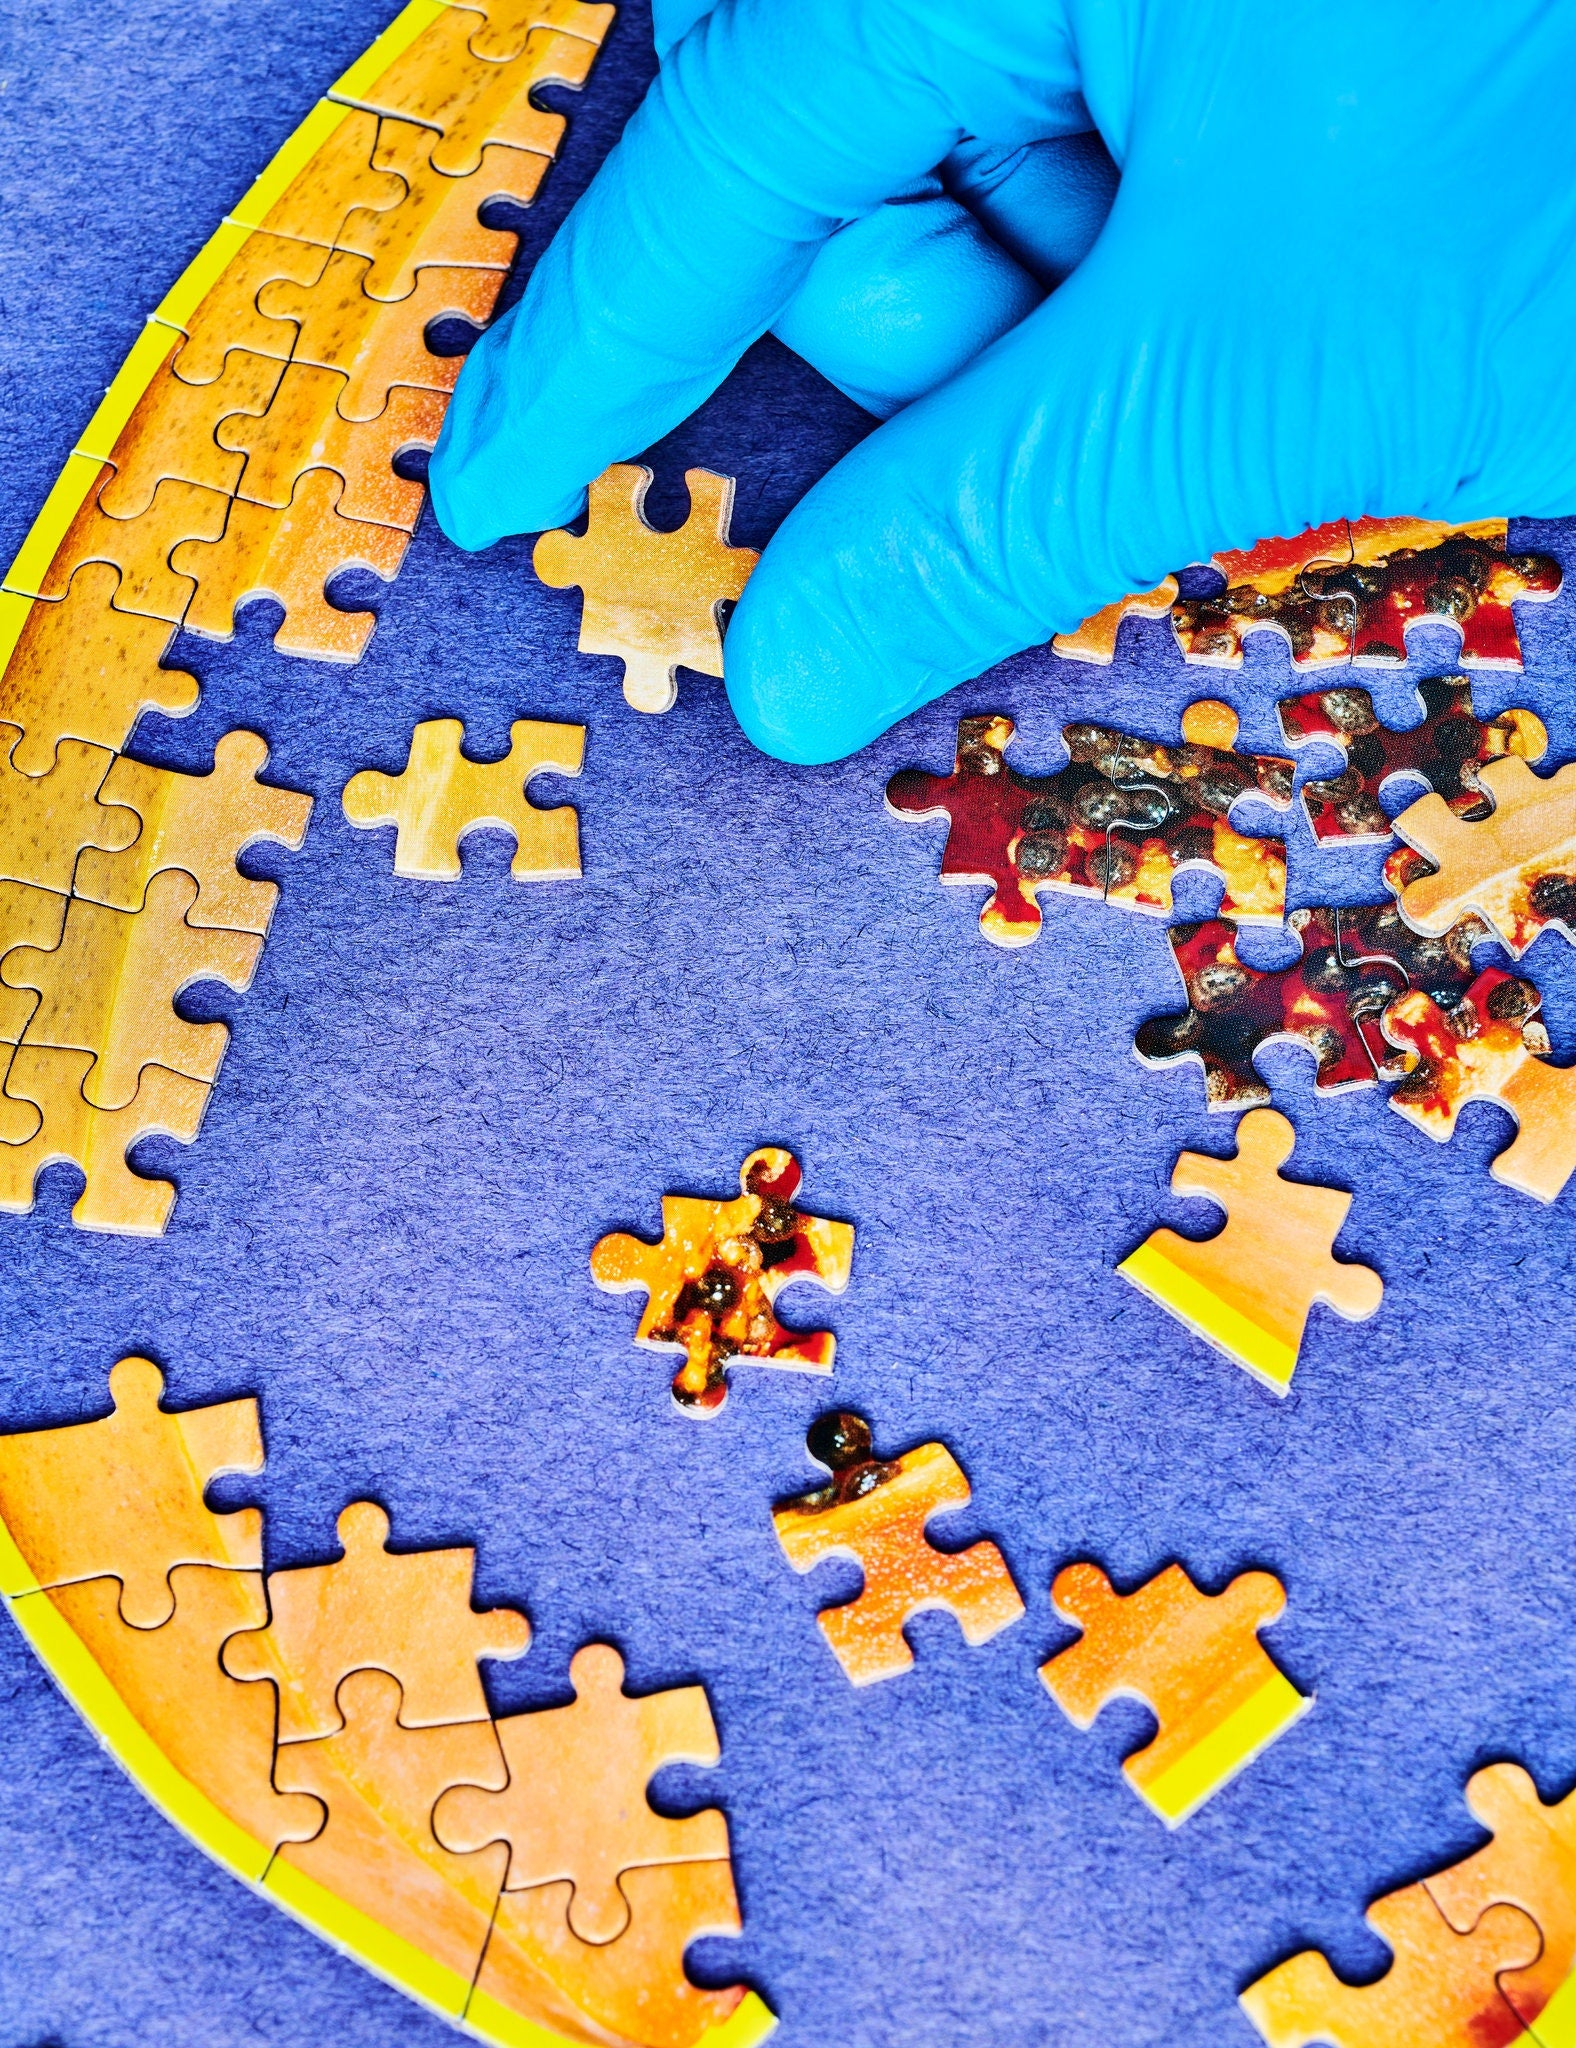 Here's How Those Hot Jigsaw Puzzles Are Made  The coronavirus has sent businesses racing as demand surges past levels seen at Christmas.  By Amie Tsang